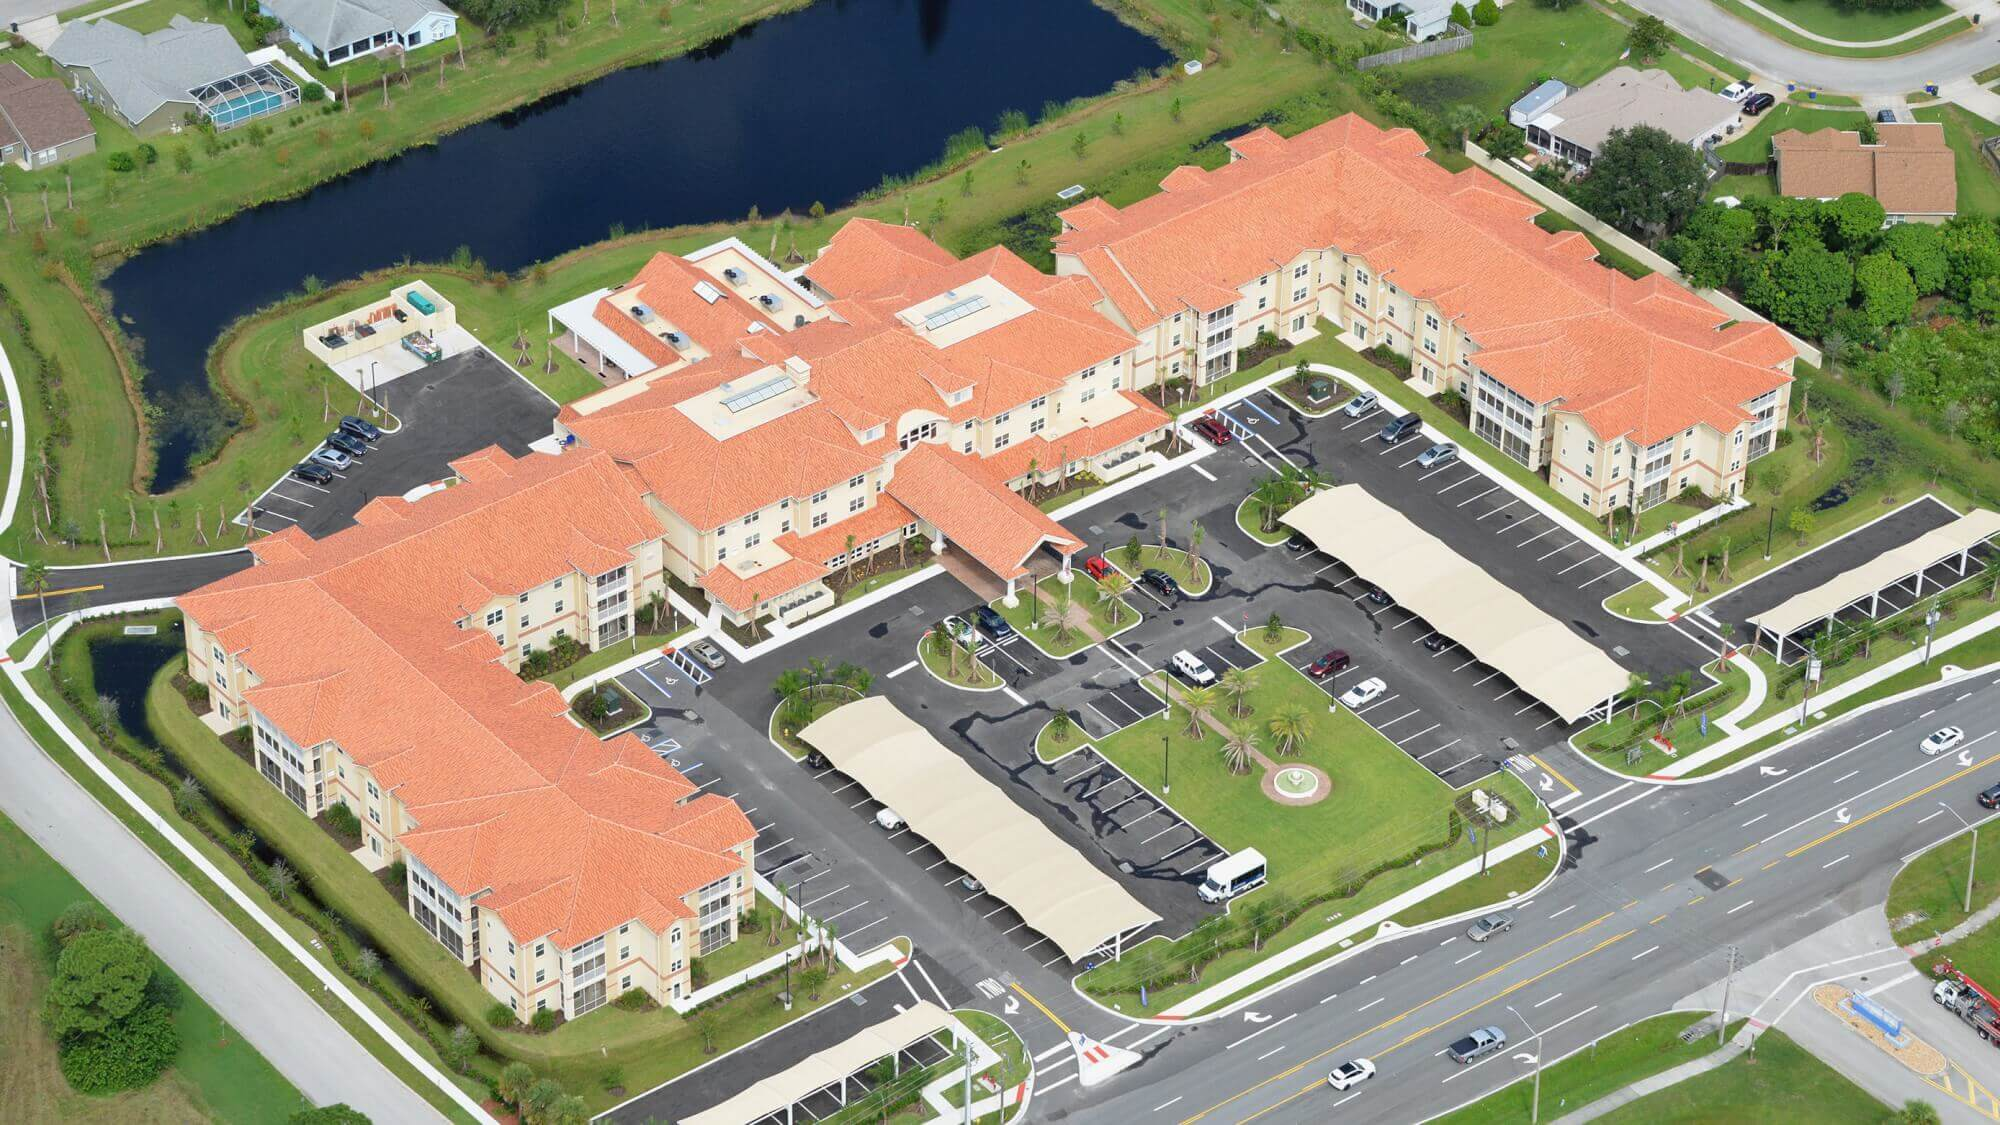 Aerial view of Shell Harbor Retirement Community